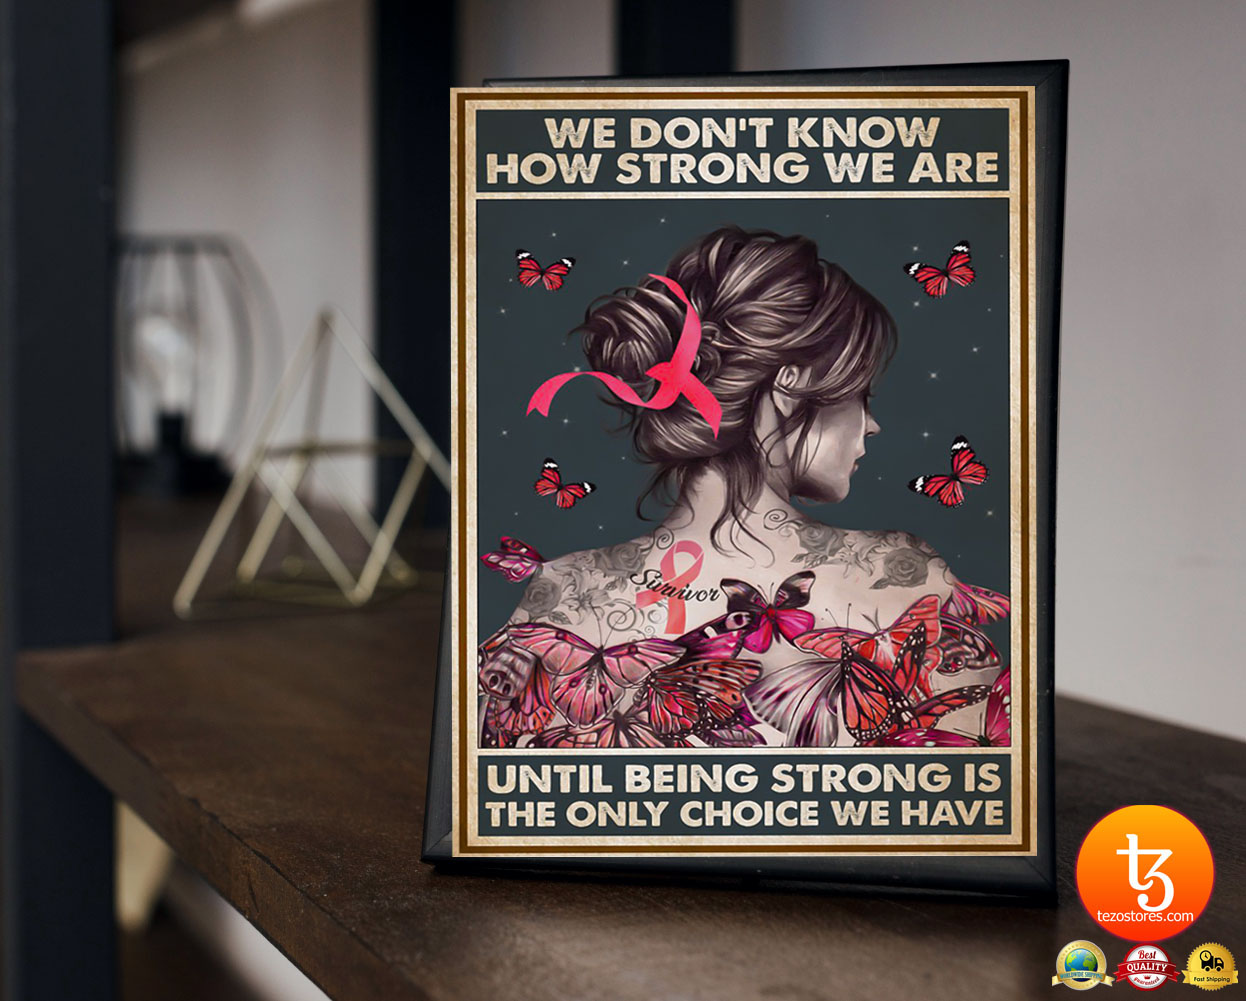 We don't know how strong we are until being strong is the only choice we have poster 19